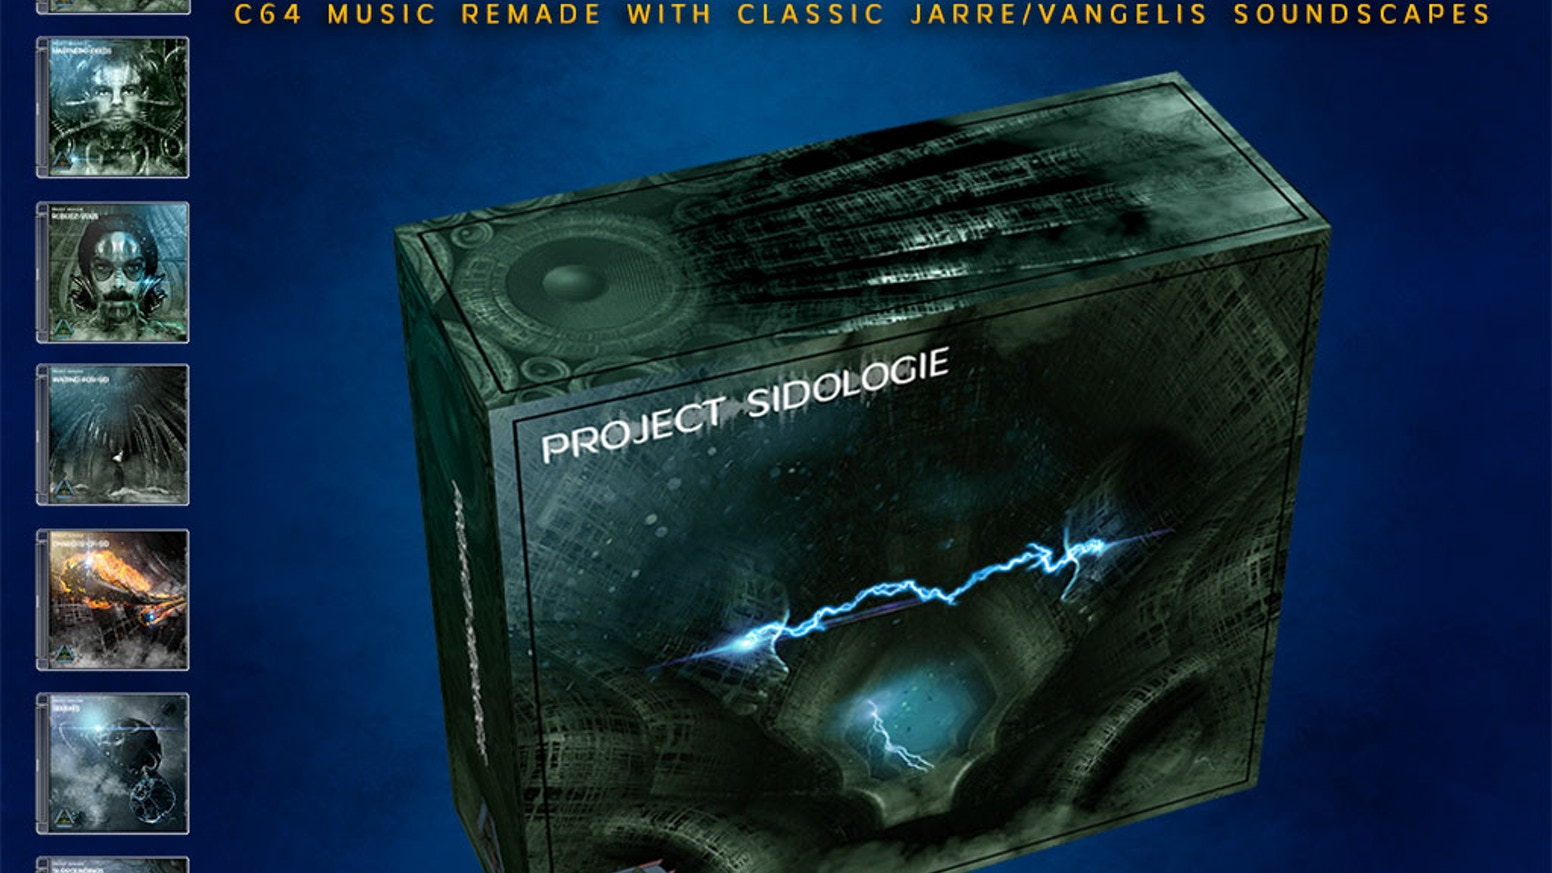 Project Sidologie by Marcel Donné - this luxury box set features Commodore 64 music remakes with classic JARRE and Vangelis soundscapes